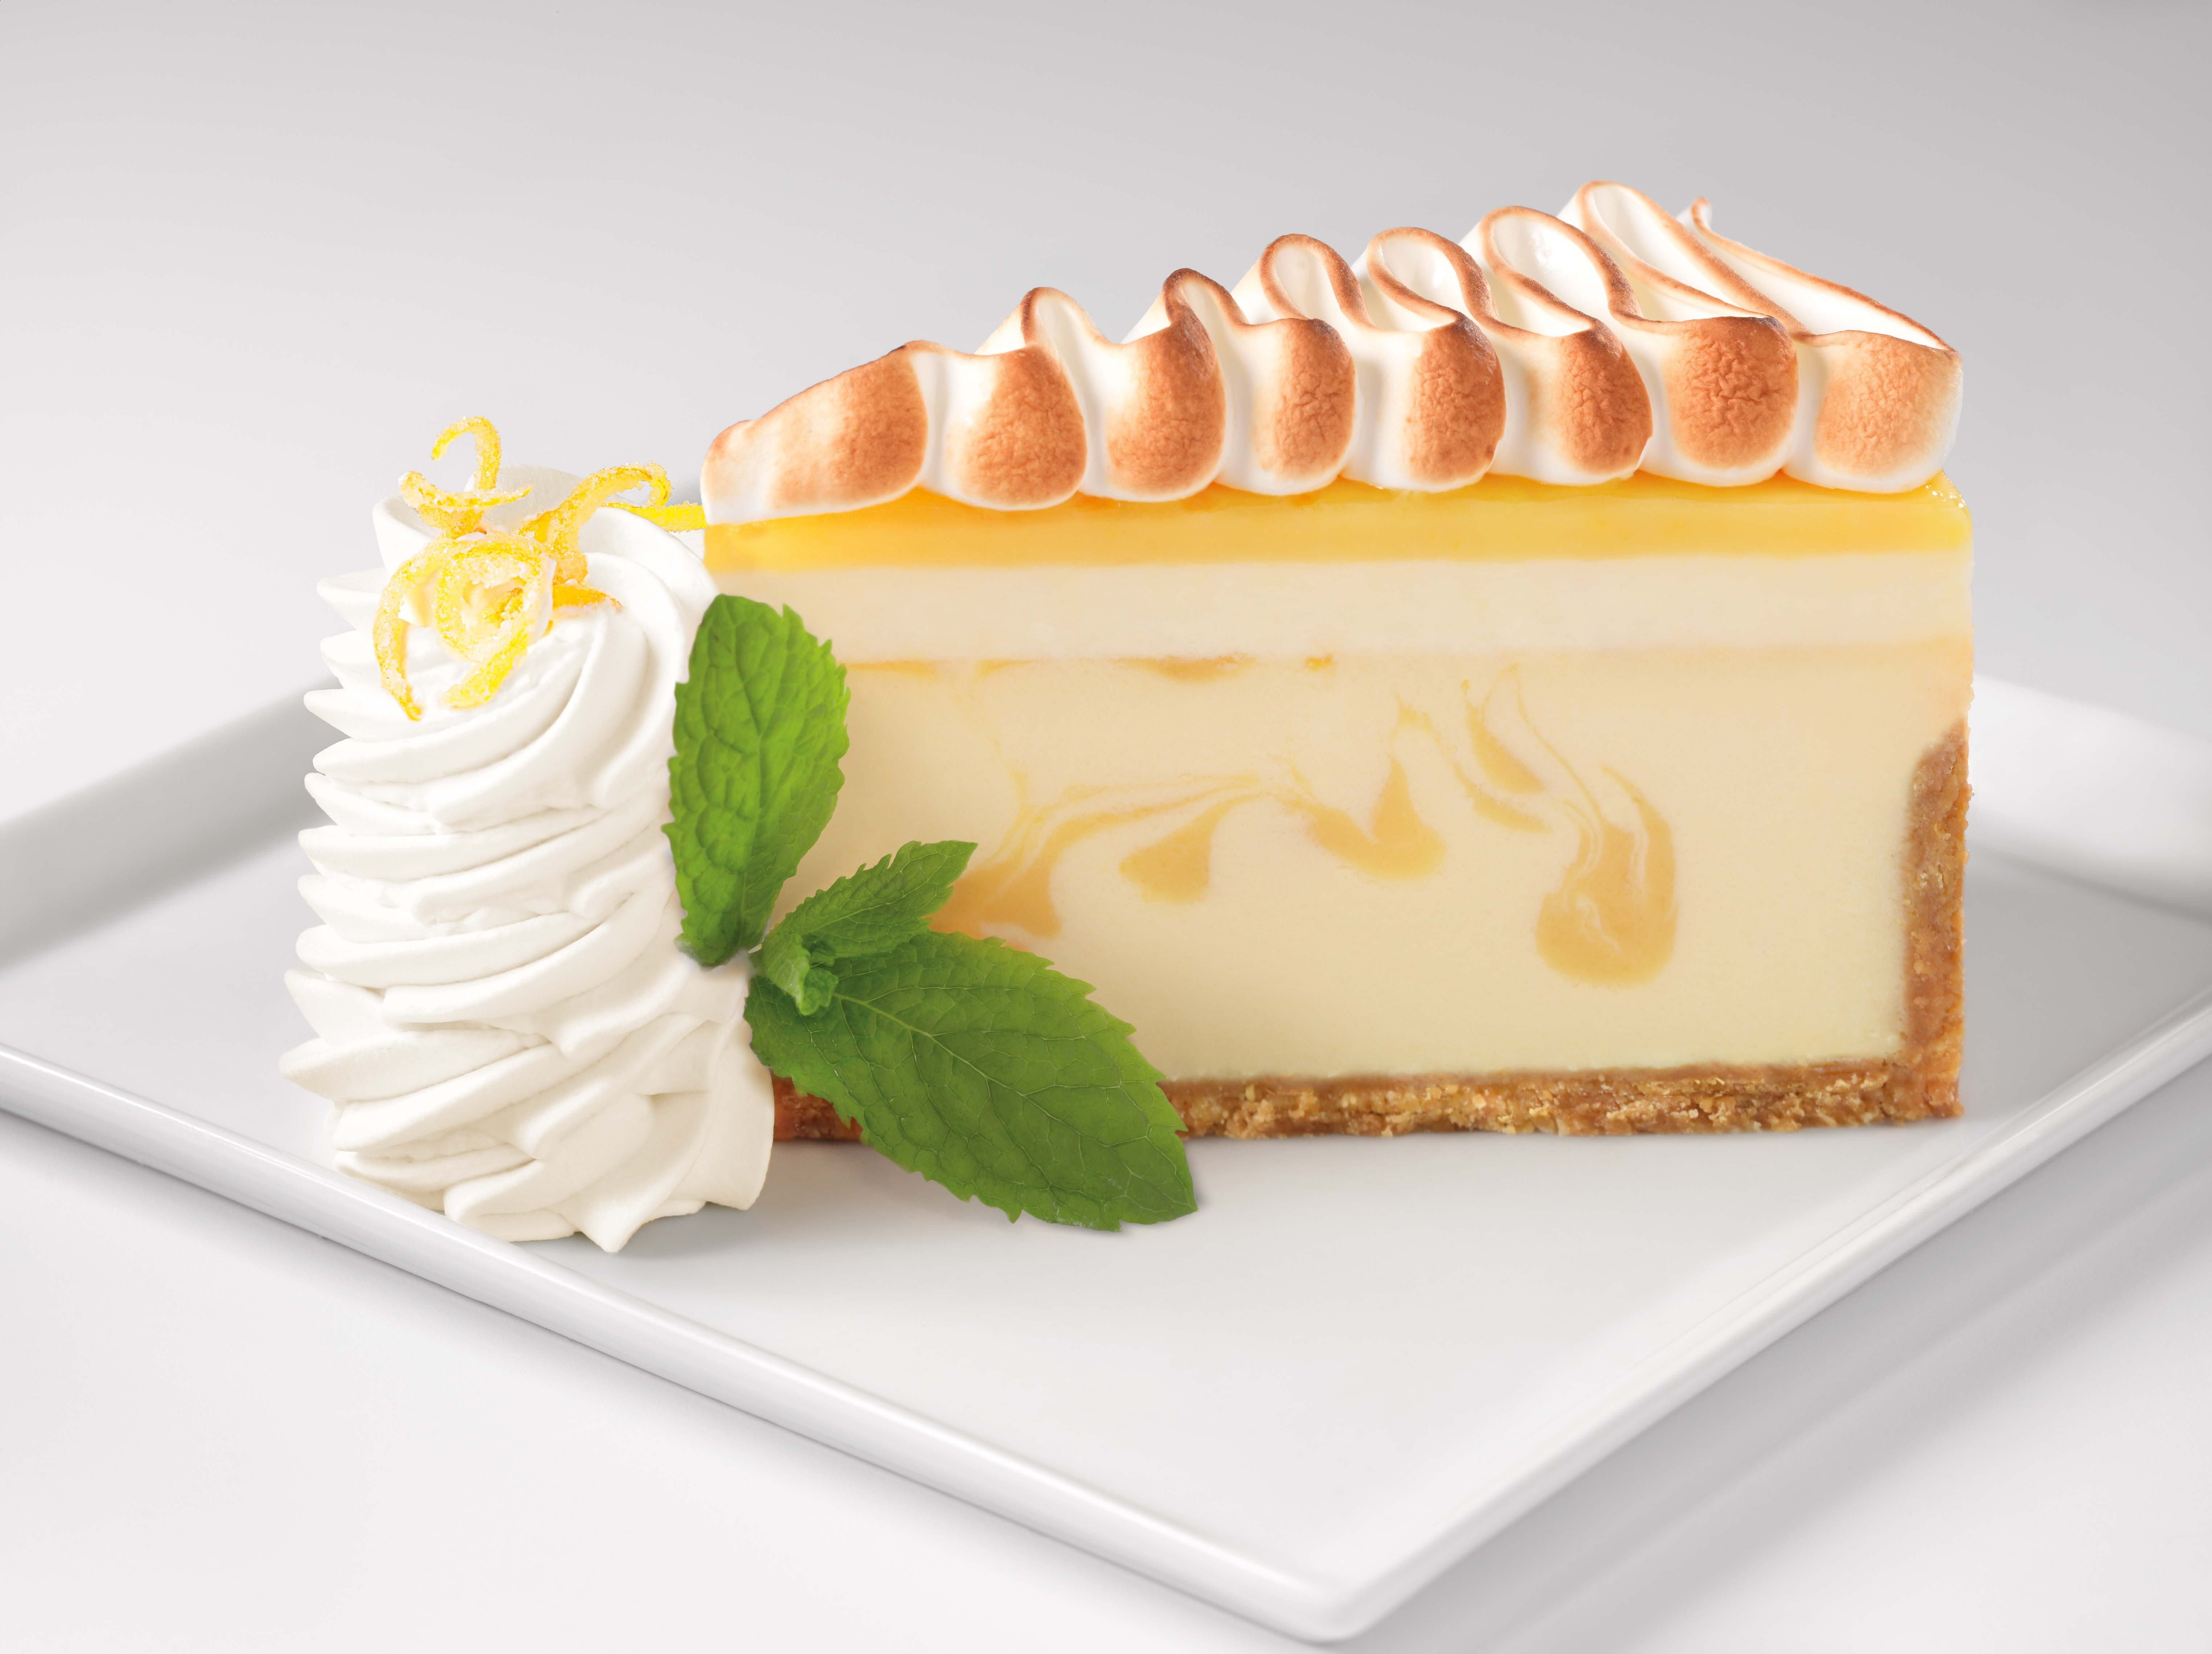 Cheesecake Factory Cheesecake Flavors The Cheesecake Factory Unveils